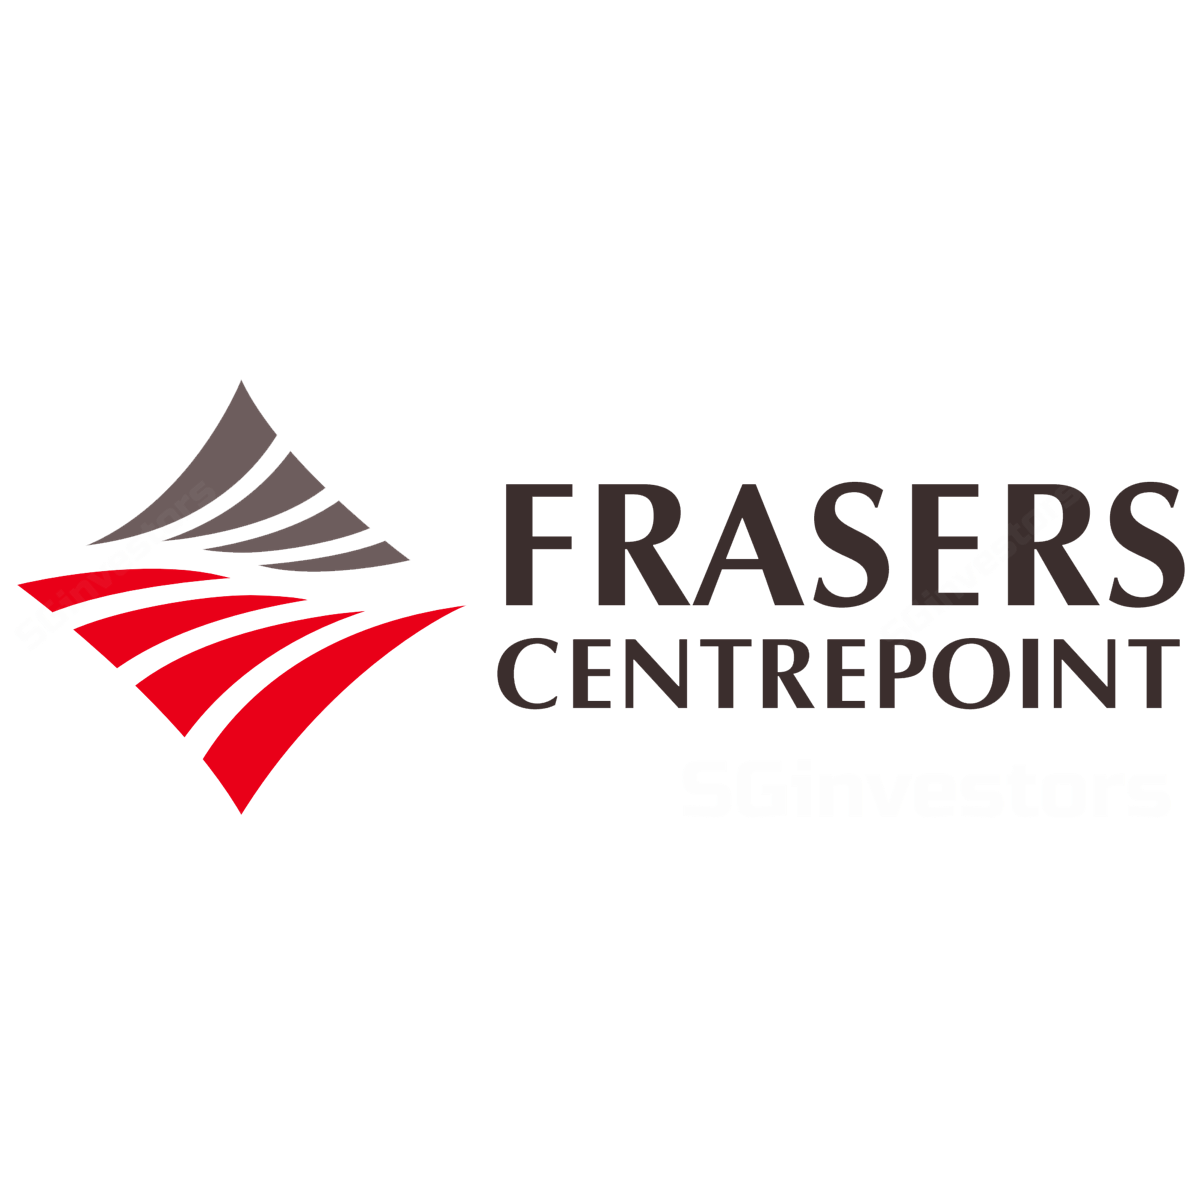 Frasers Centrepoint Ltd - DBS Vickers 2017-08-11: Strong 9M17 Figures